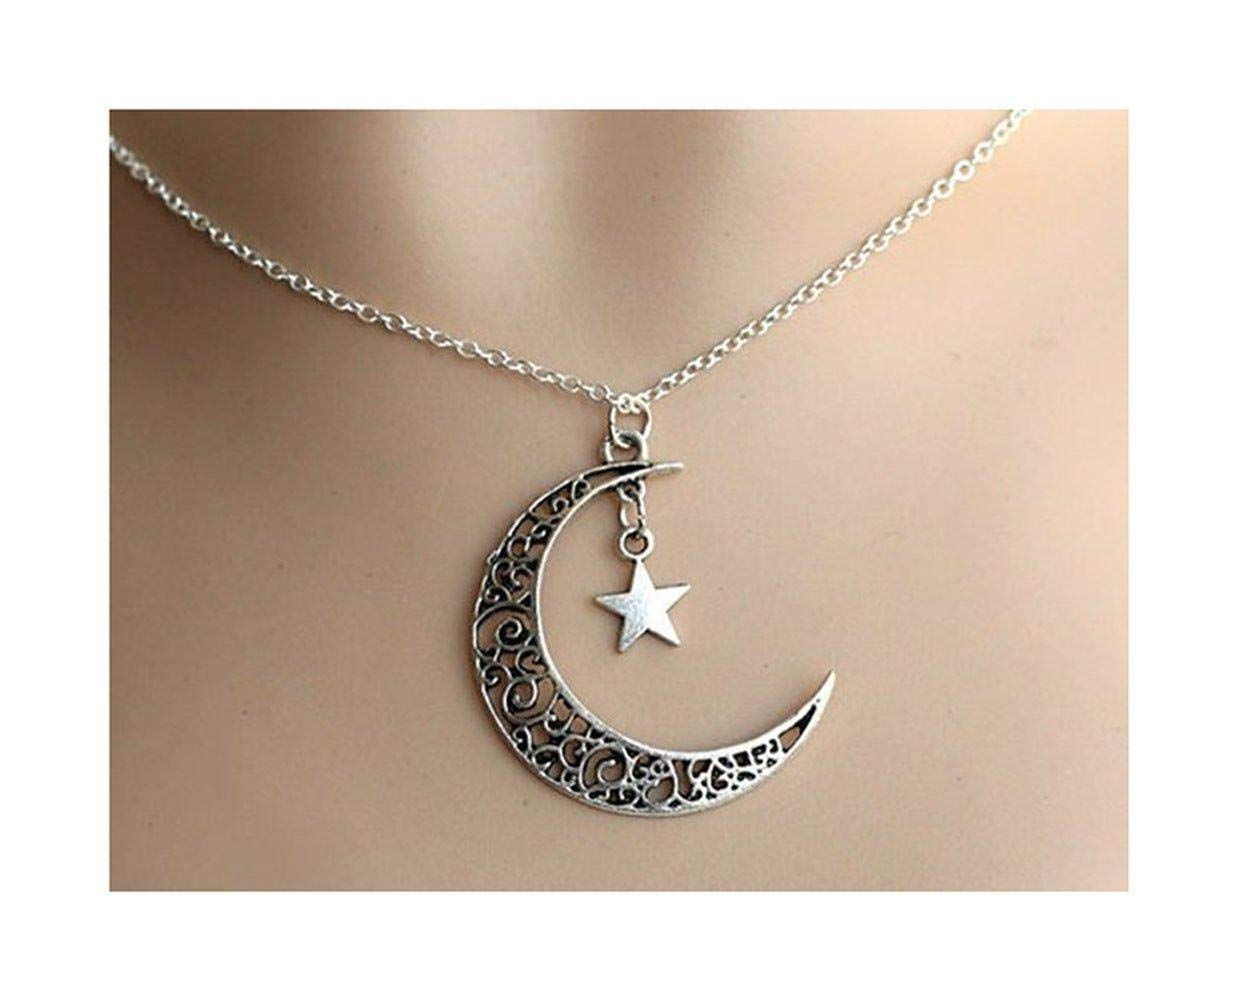 Oldlila Silver-plated hollow Crescent Moon with Star pendant Necklace